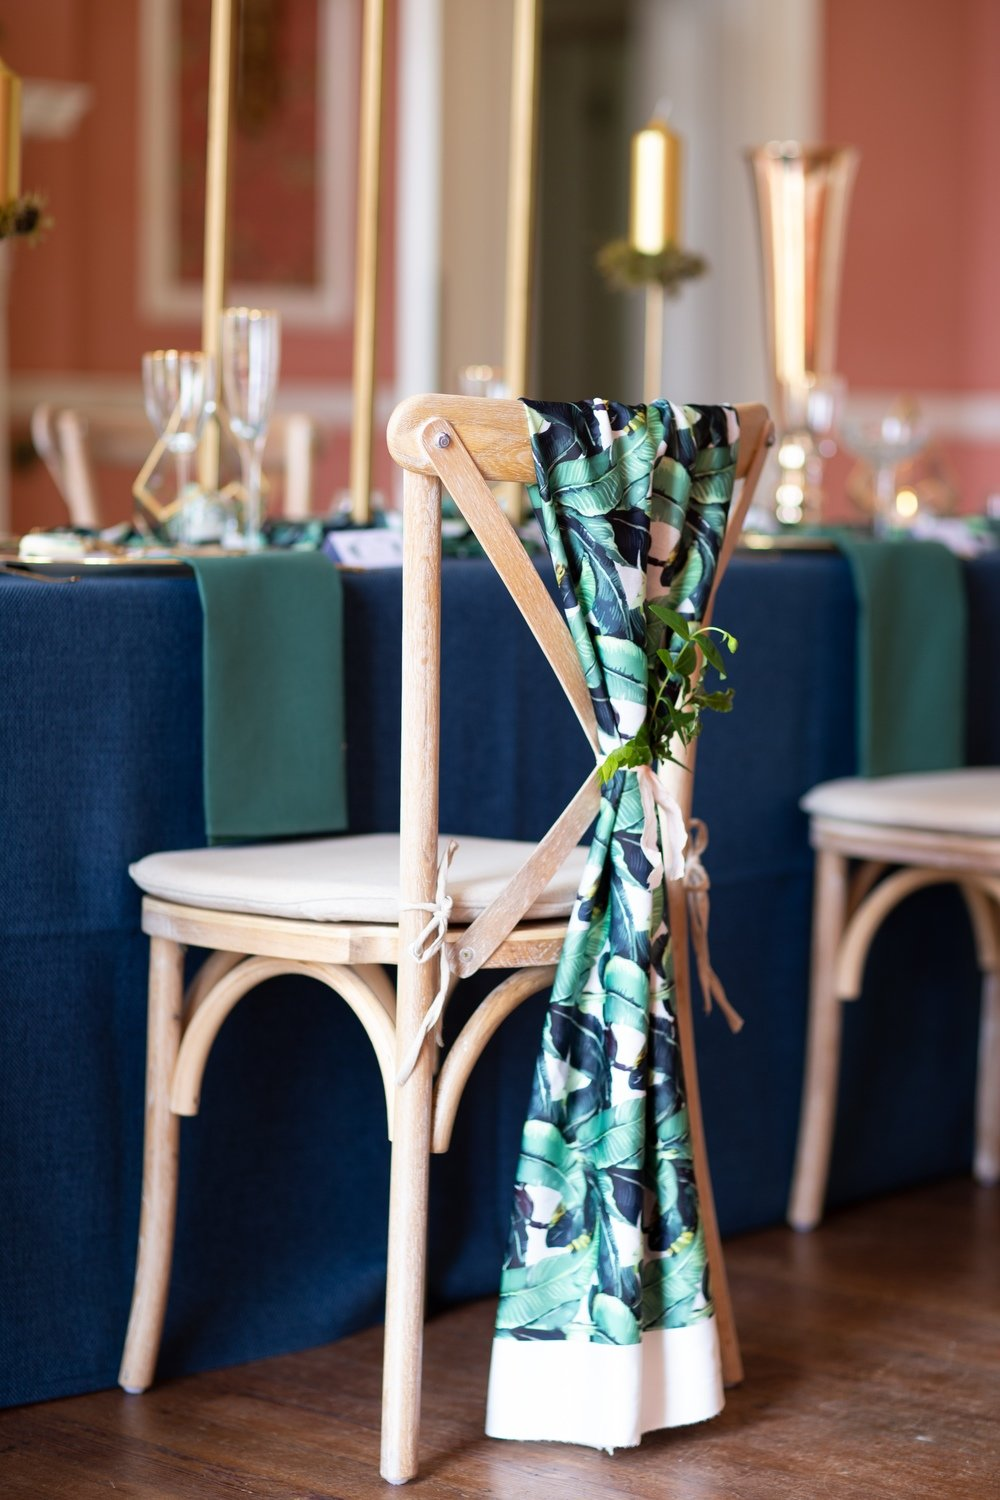 Linens / round textured table cloths